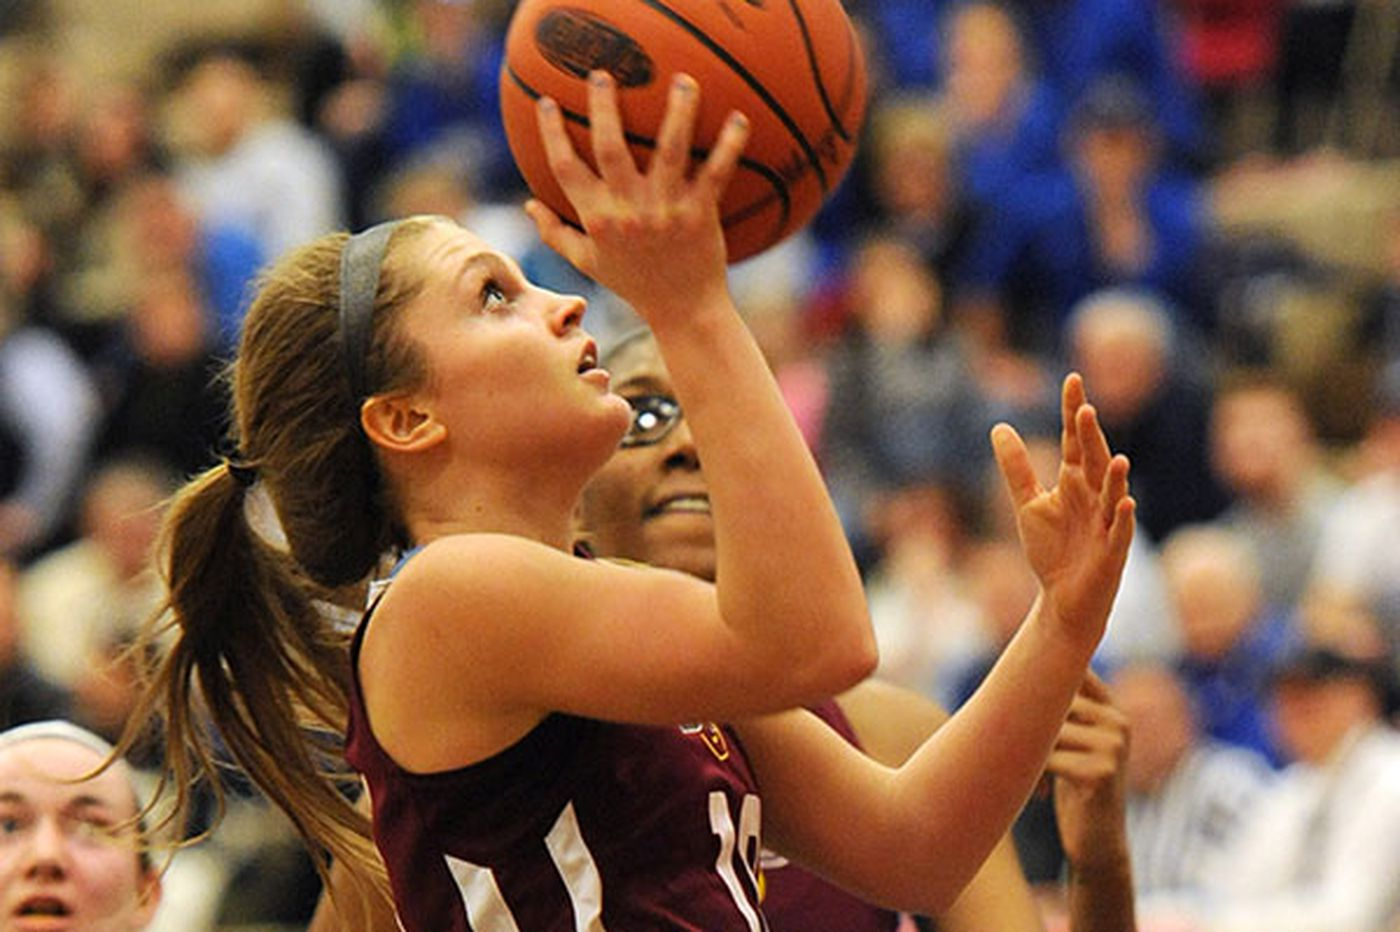 Monaghan's big night leads Bonner-Prendergast to double-overtime win